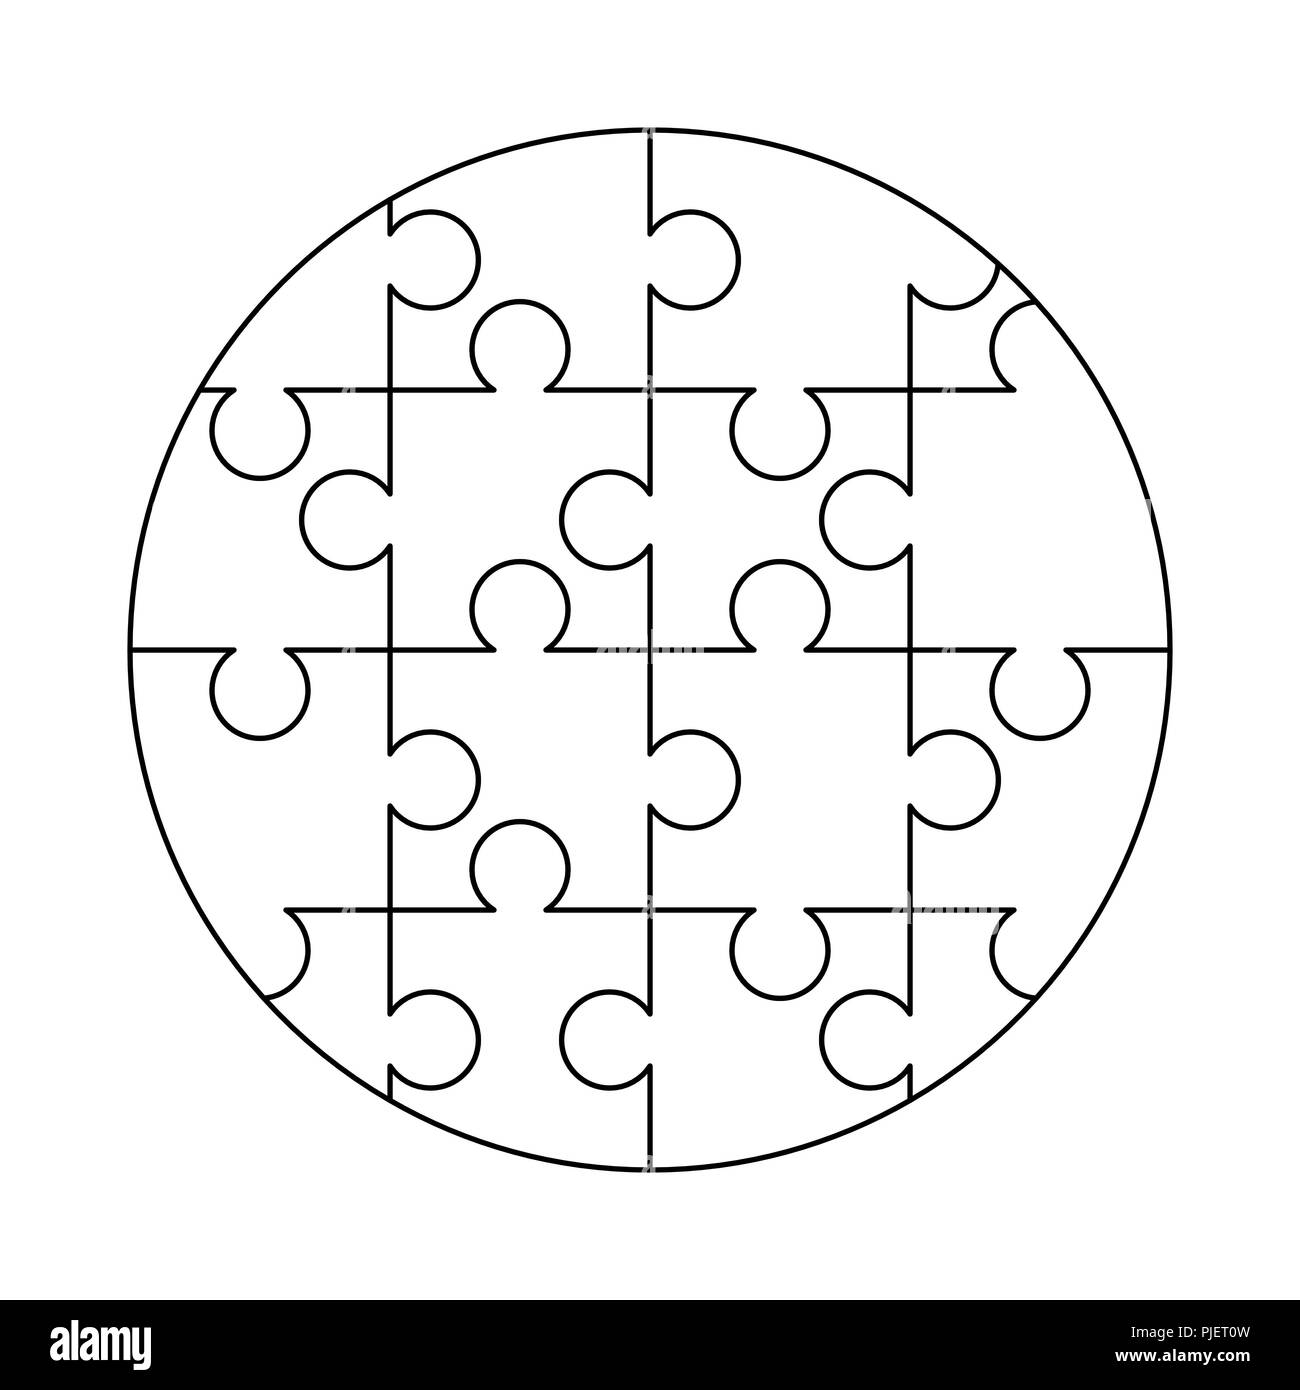 16 white puzzles pieces arranged in a round shape jigsaw puzzle